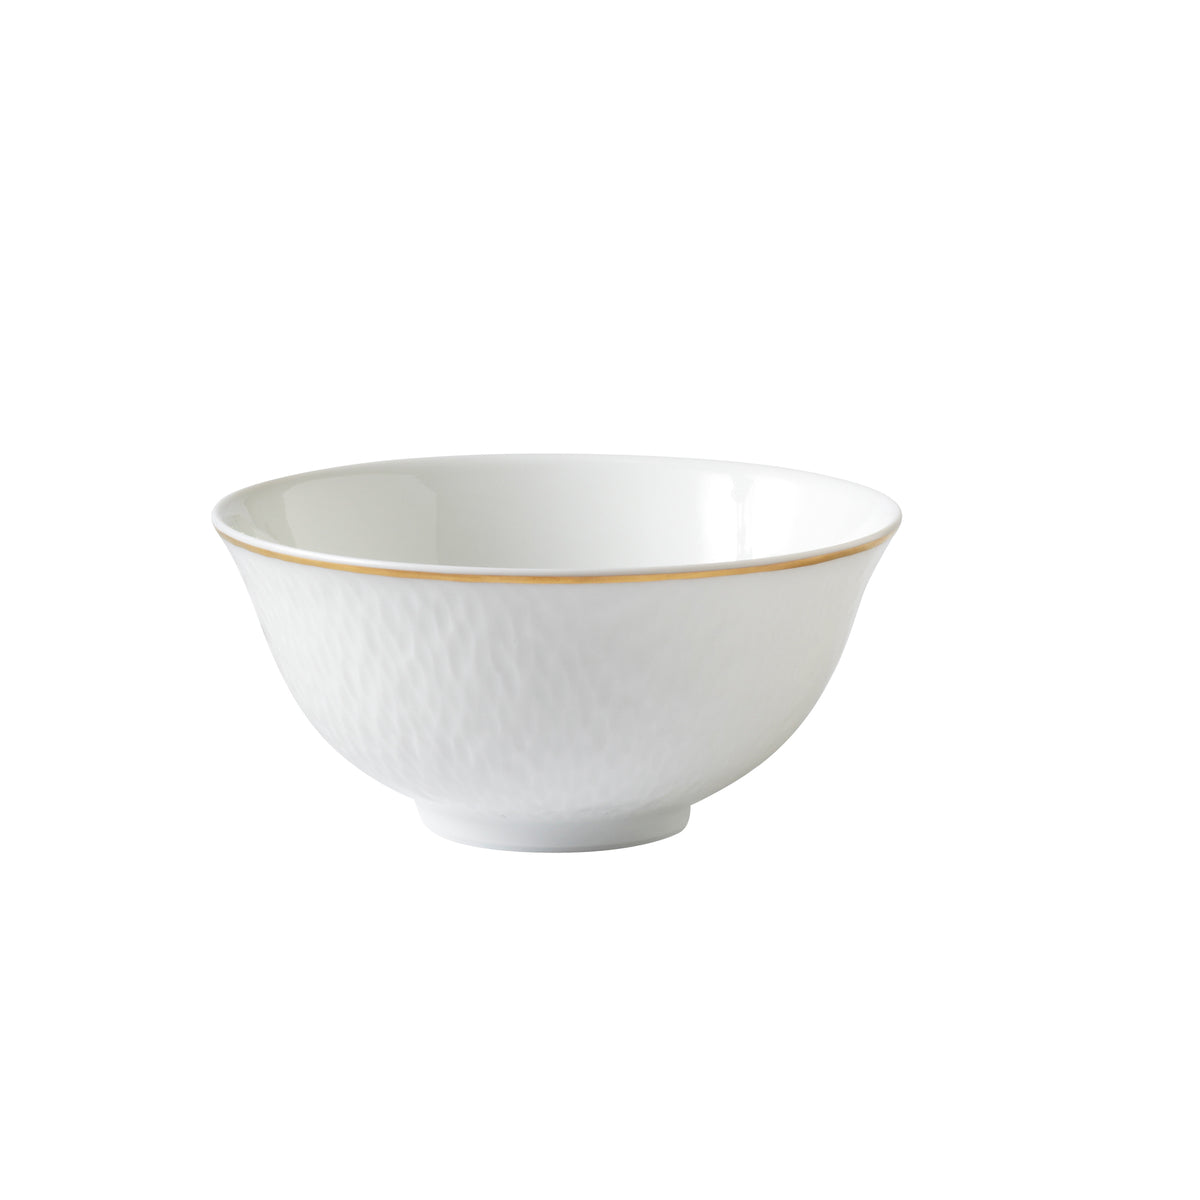 Mineral Gold Chinese Porcelain Small Bowl